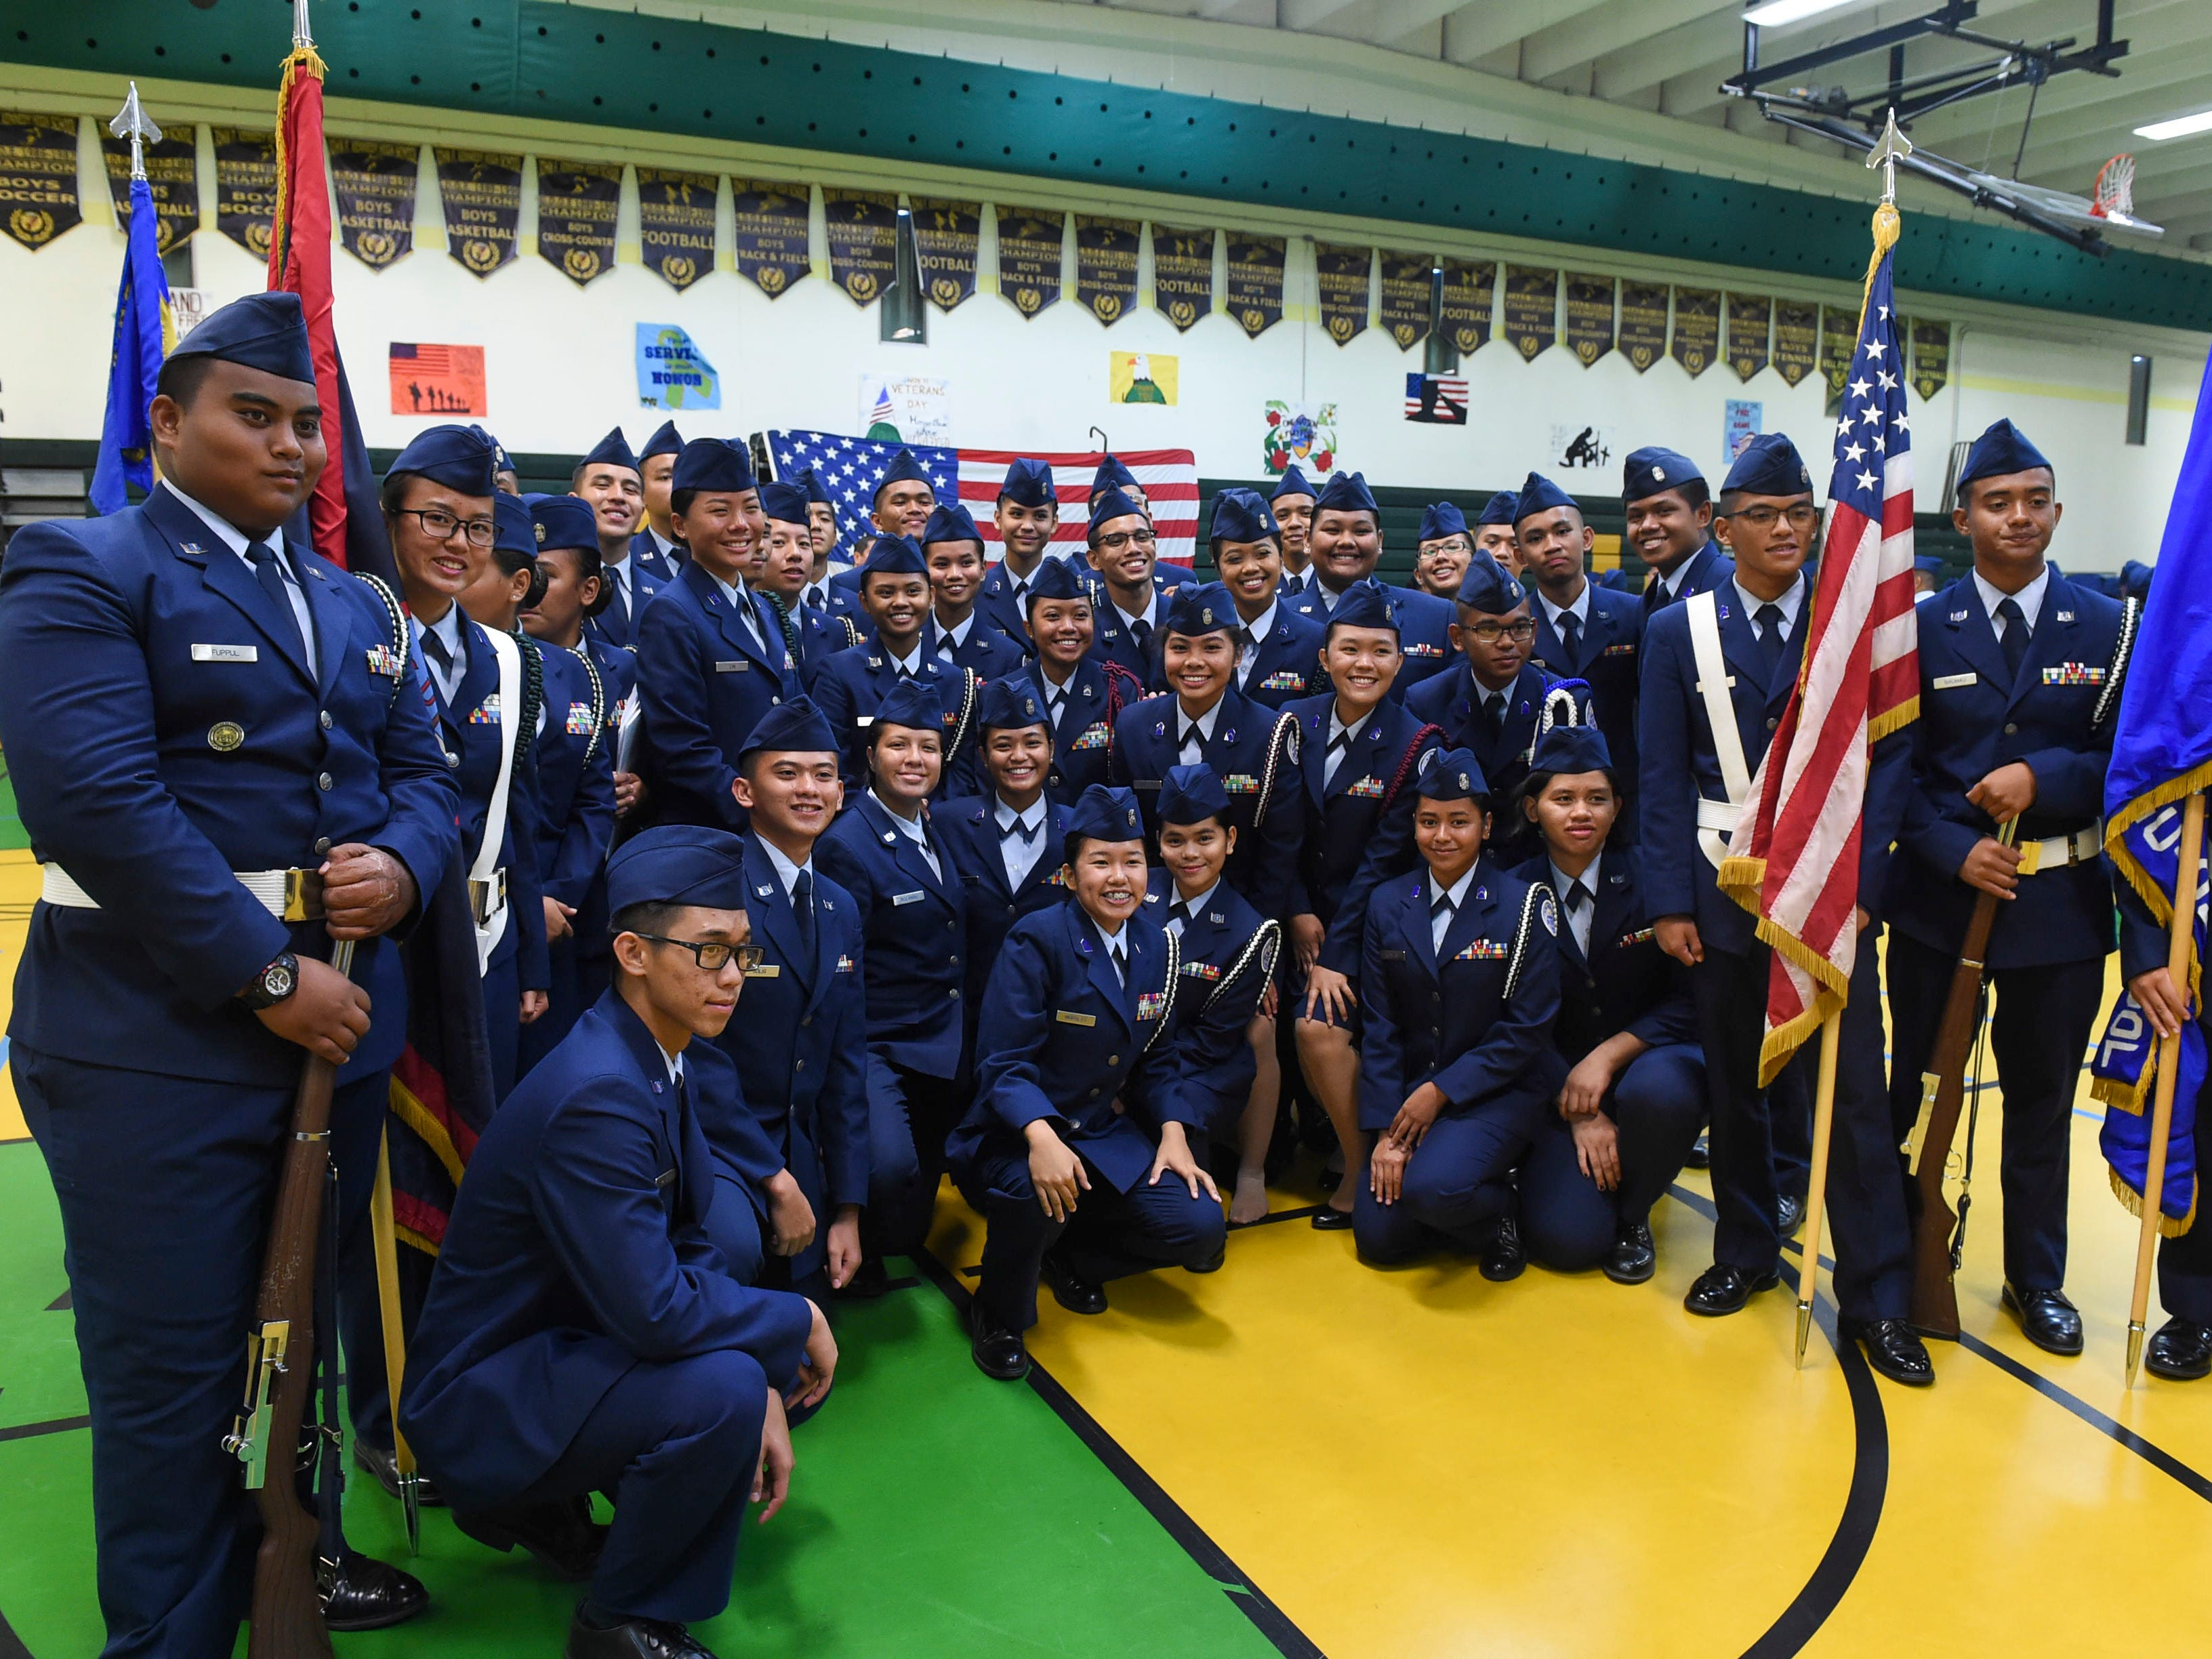 John F. Kennedy High School Air Force Junior ROTC cadets after the JFK High School Veterans Recognition Ceremony, Nov. 9, 2018.